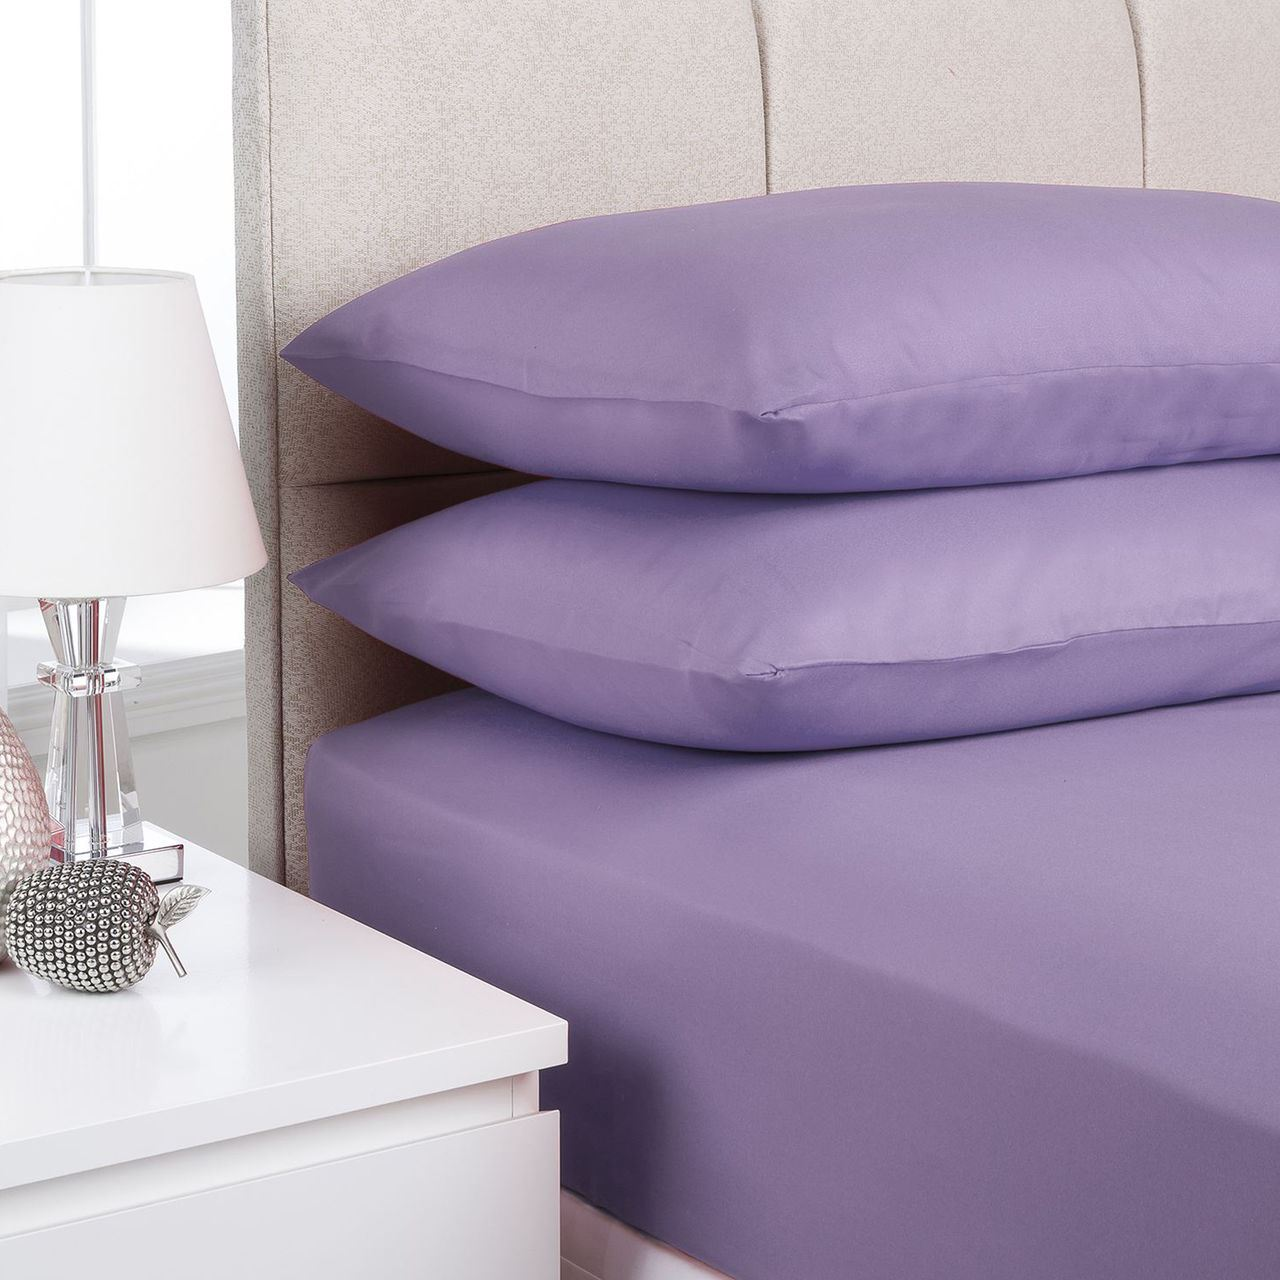 Etonnant 2 Pillow Case Plain Fitted Bed Sheets Dyed